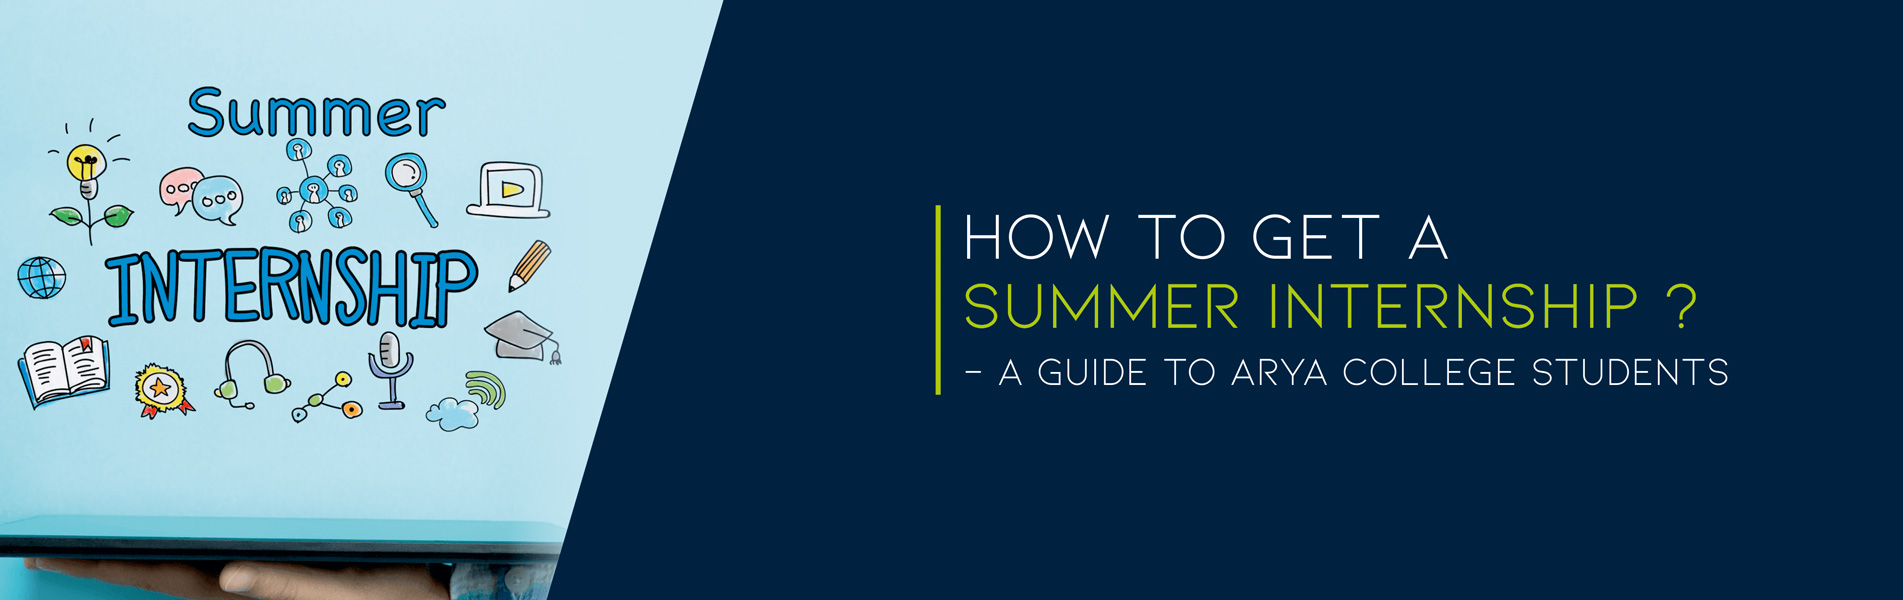 How-to-get-a-summer-internship